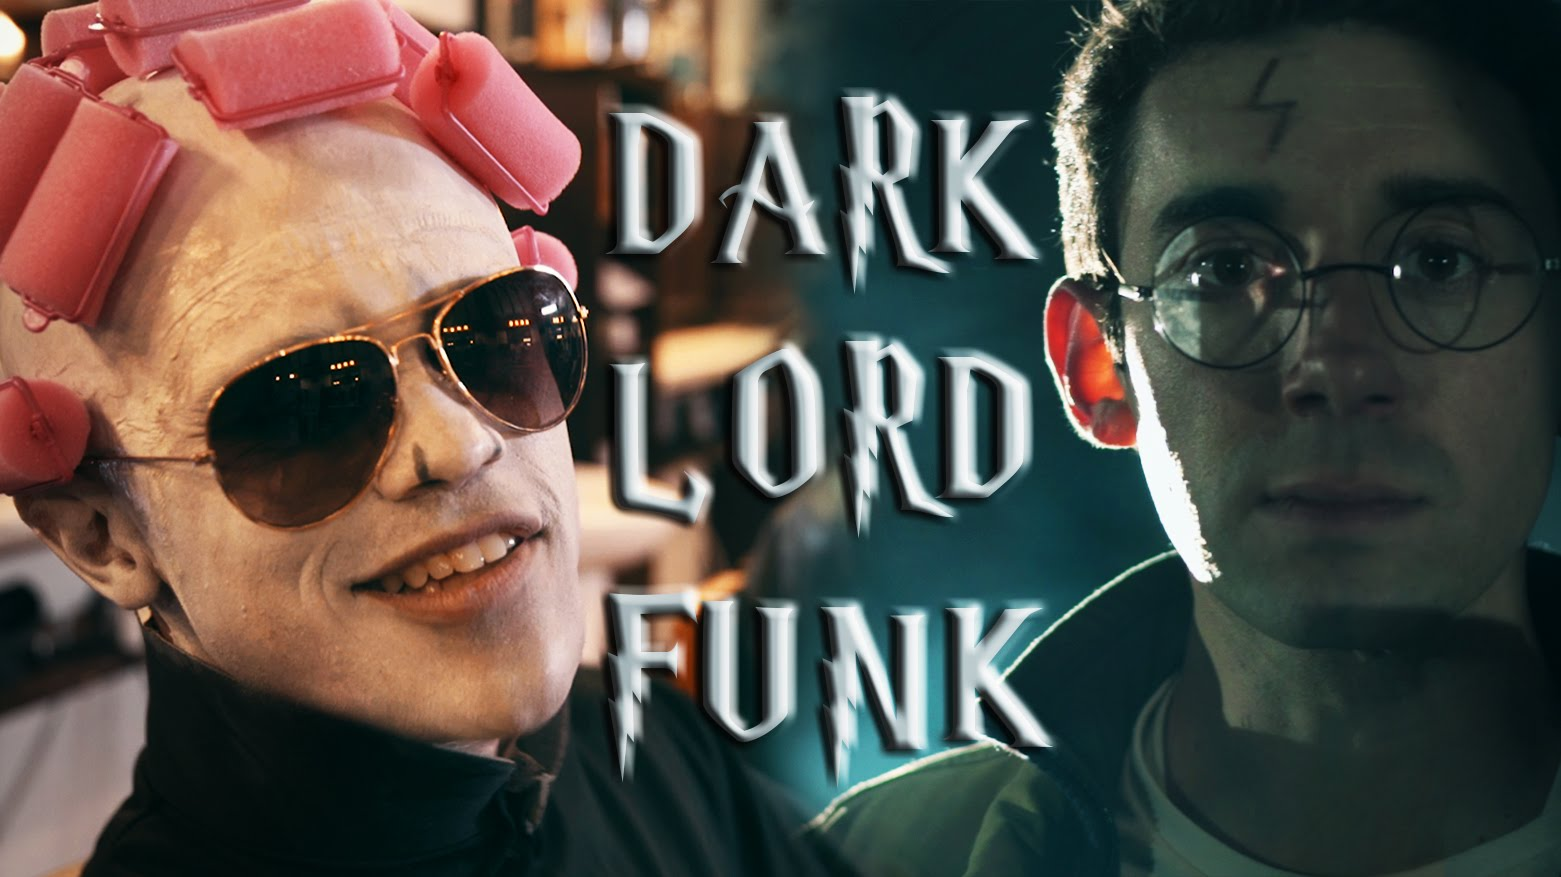 Stop the internet, this 'Dark Lord Funk' is the new Patronus!!!